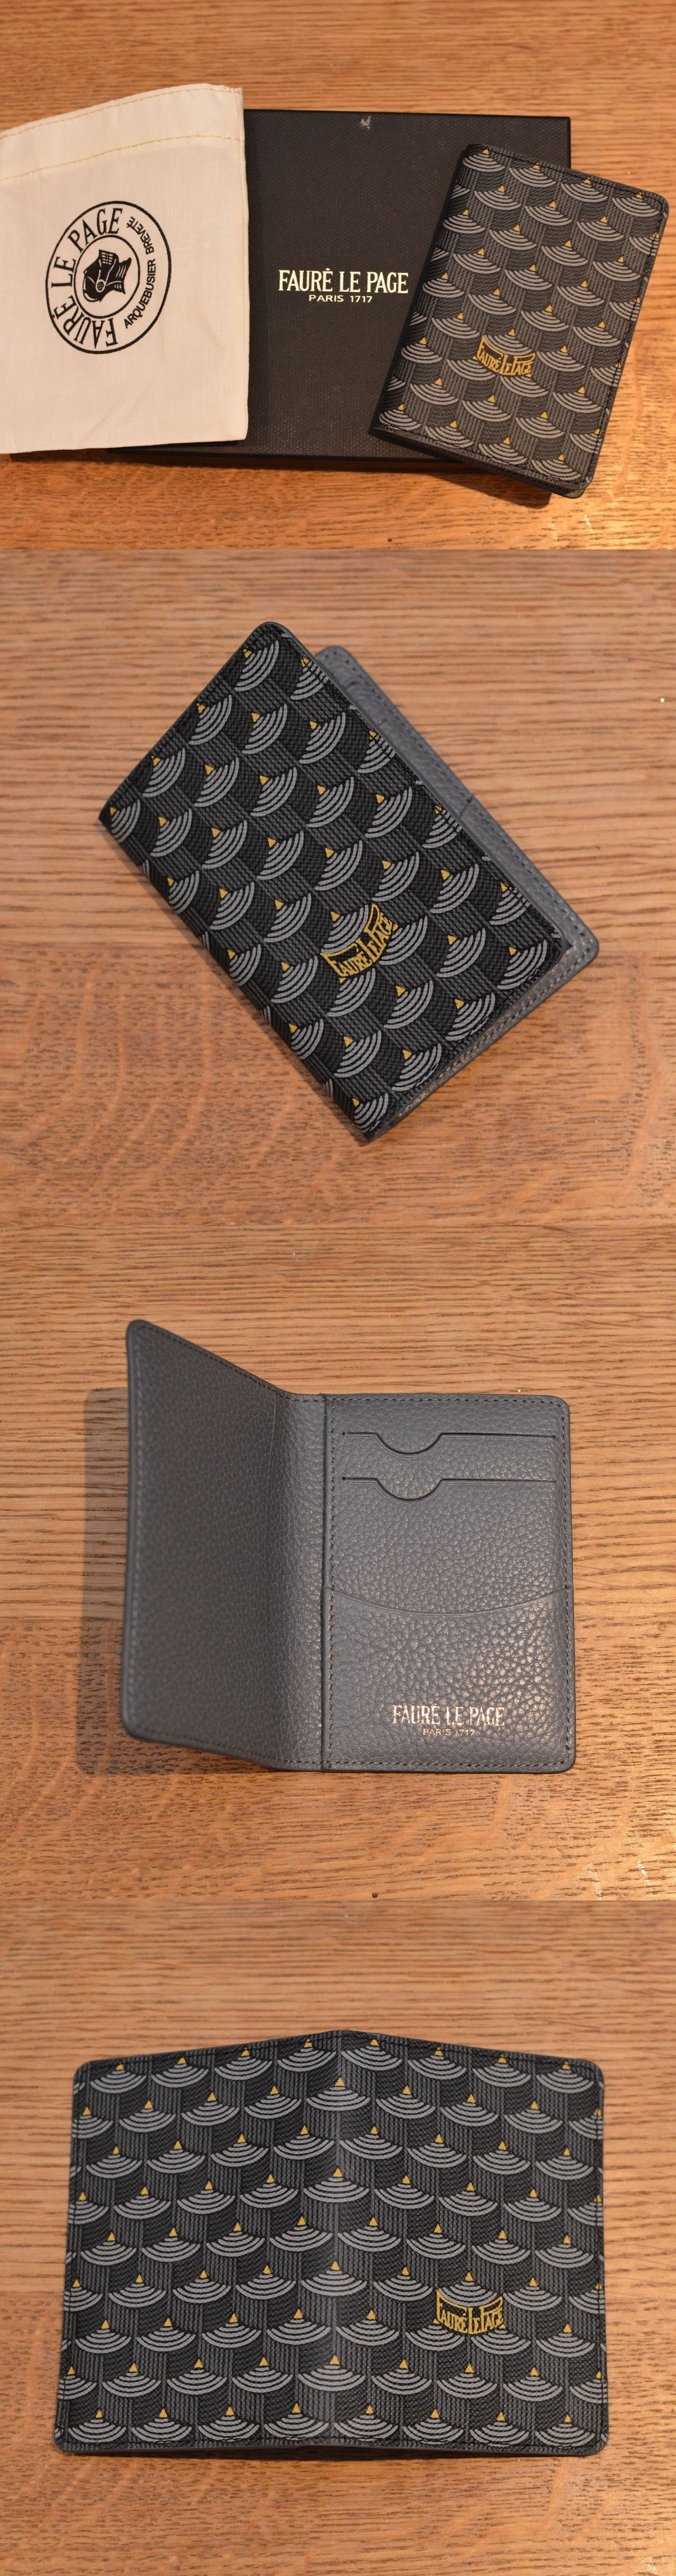 aaa7035676d Business and Credit Card Cases 105860: New Faure Le Page Steel Grey Mini  Bifold Wallet Poche Monogram France Goyard -> BUY IT NOW ONLY: $449.95 on  eBay!